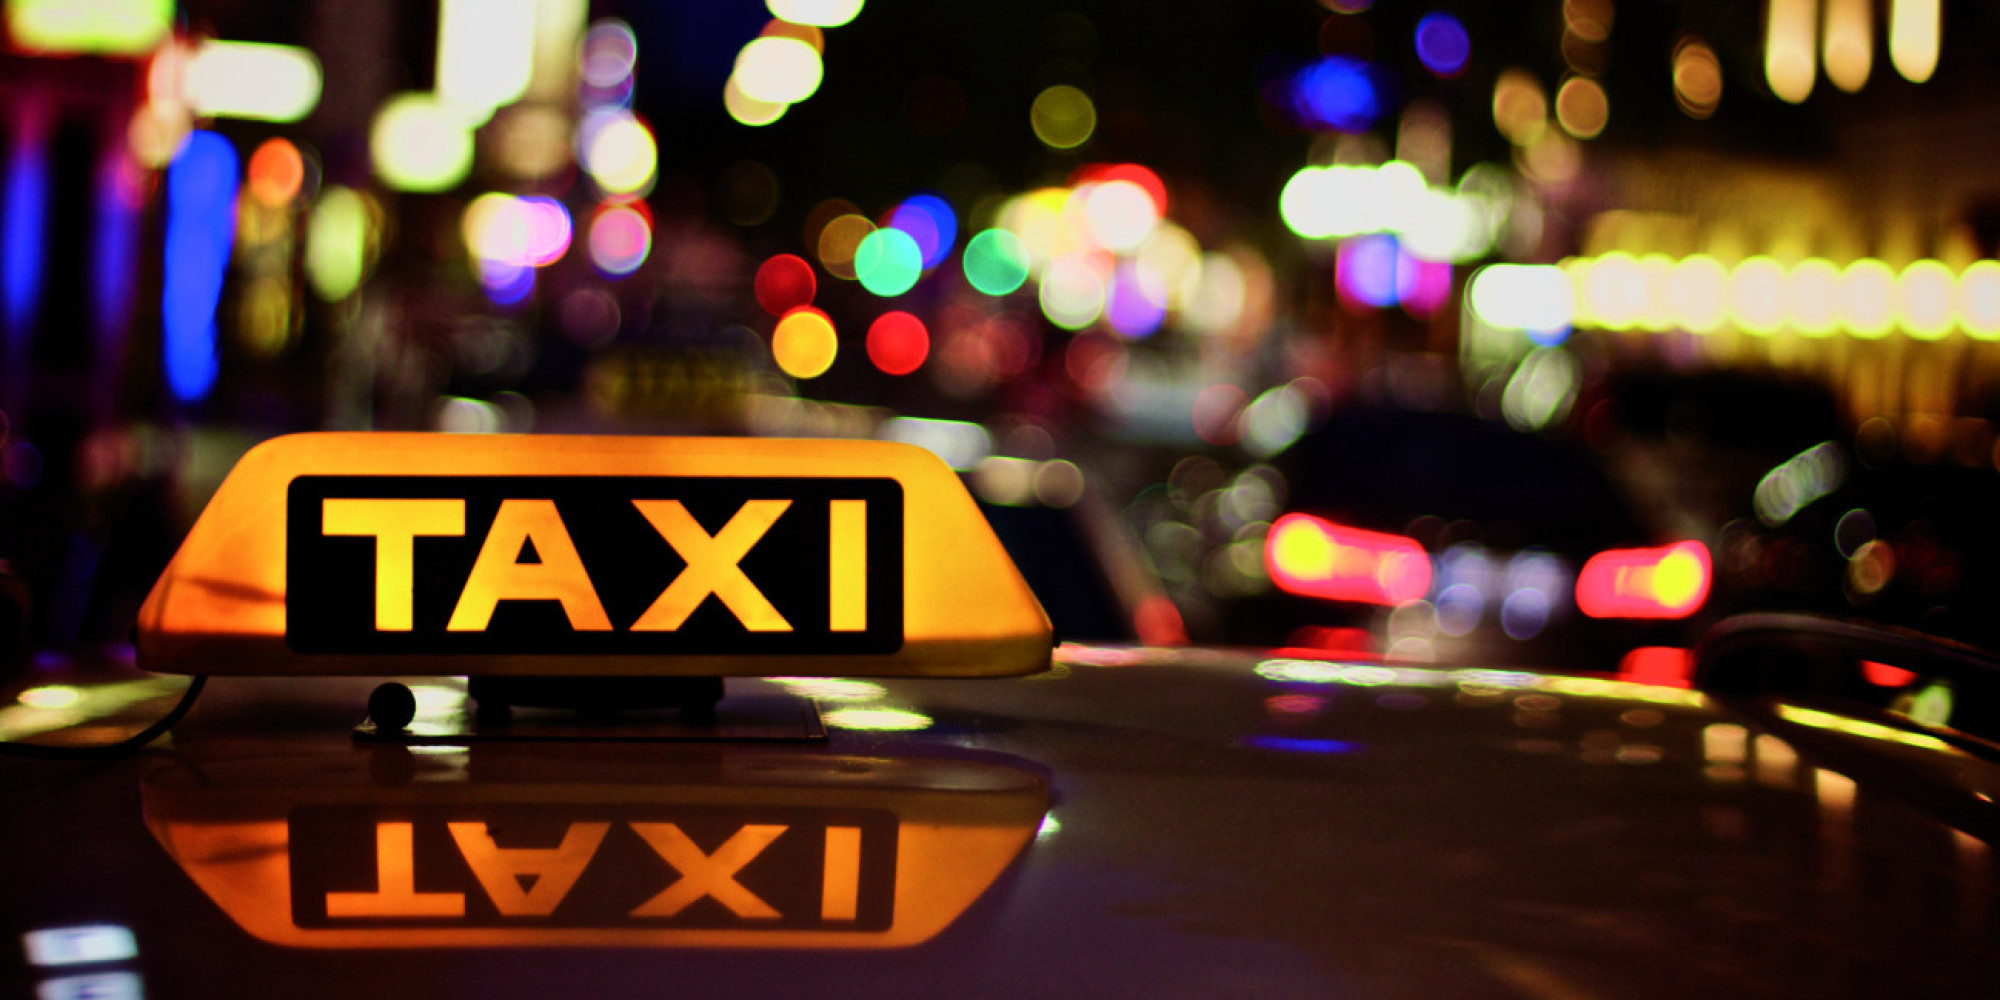 Supreme Wallpaper Hd Cleveland Taxi Drivers Refusing To Drive Cabs With Gay